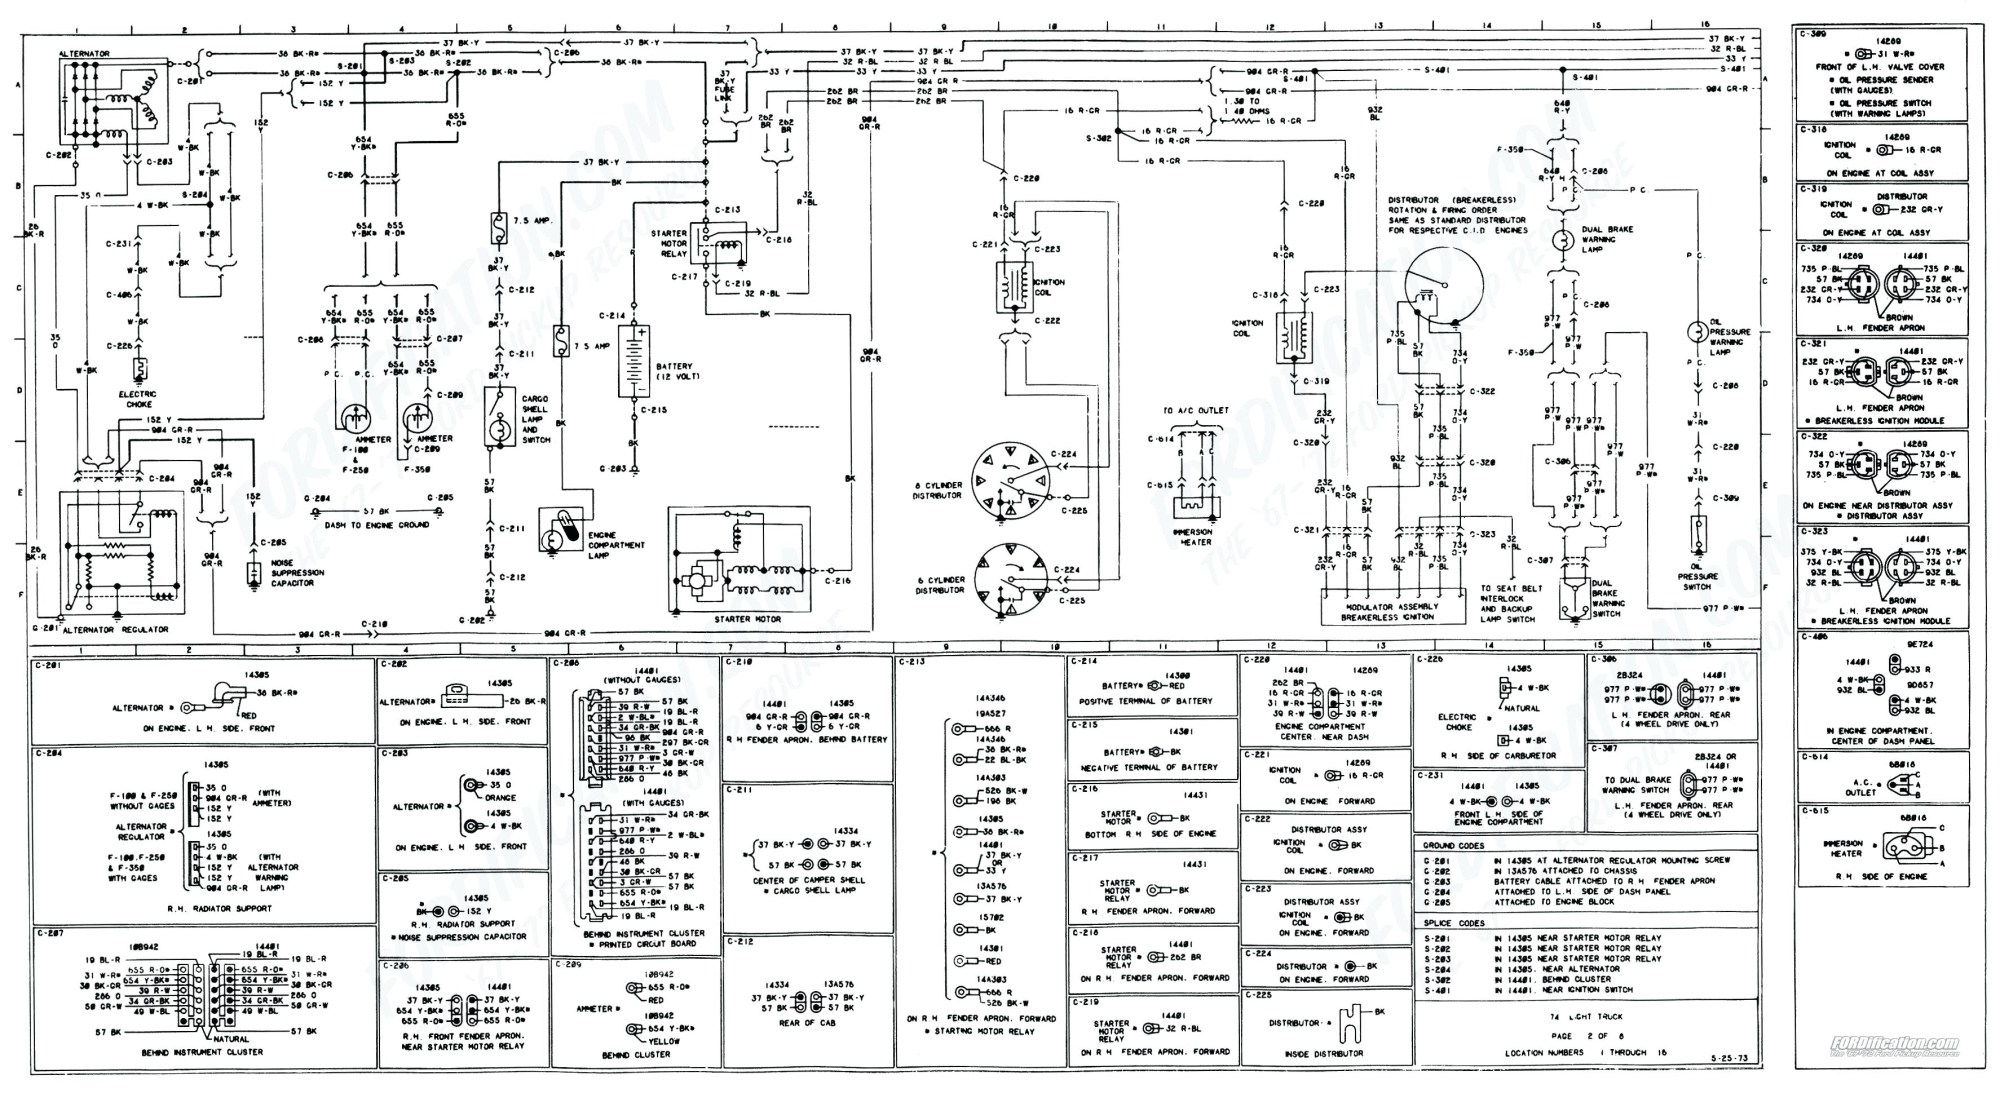 hight resolution of 2006 f750 fuse box diagram wiring diagram centre2006 ford f750 fuse box diagram wiring diagram technic2005